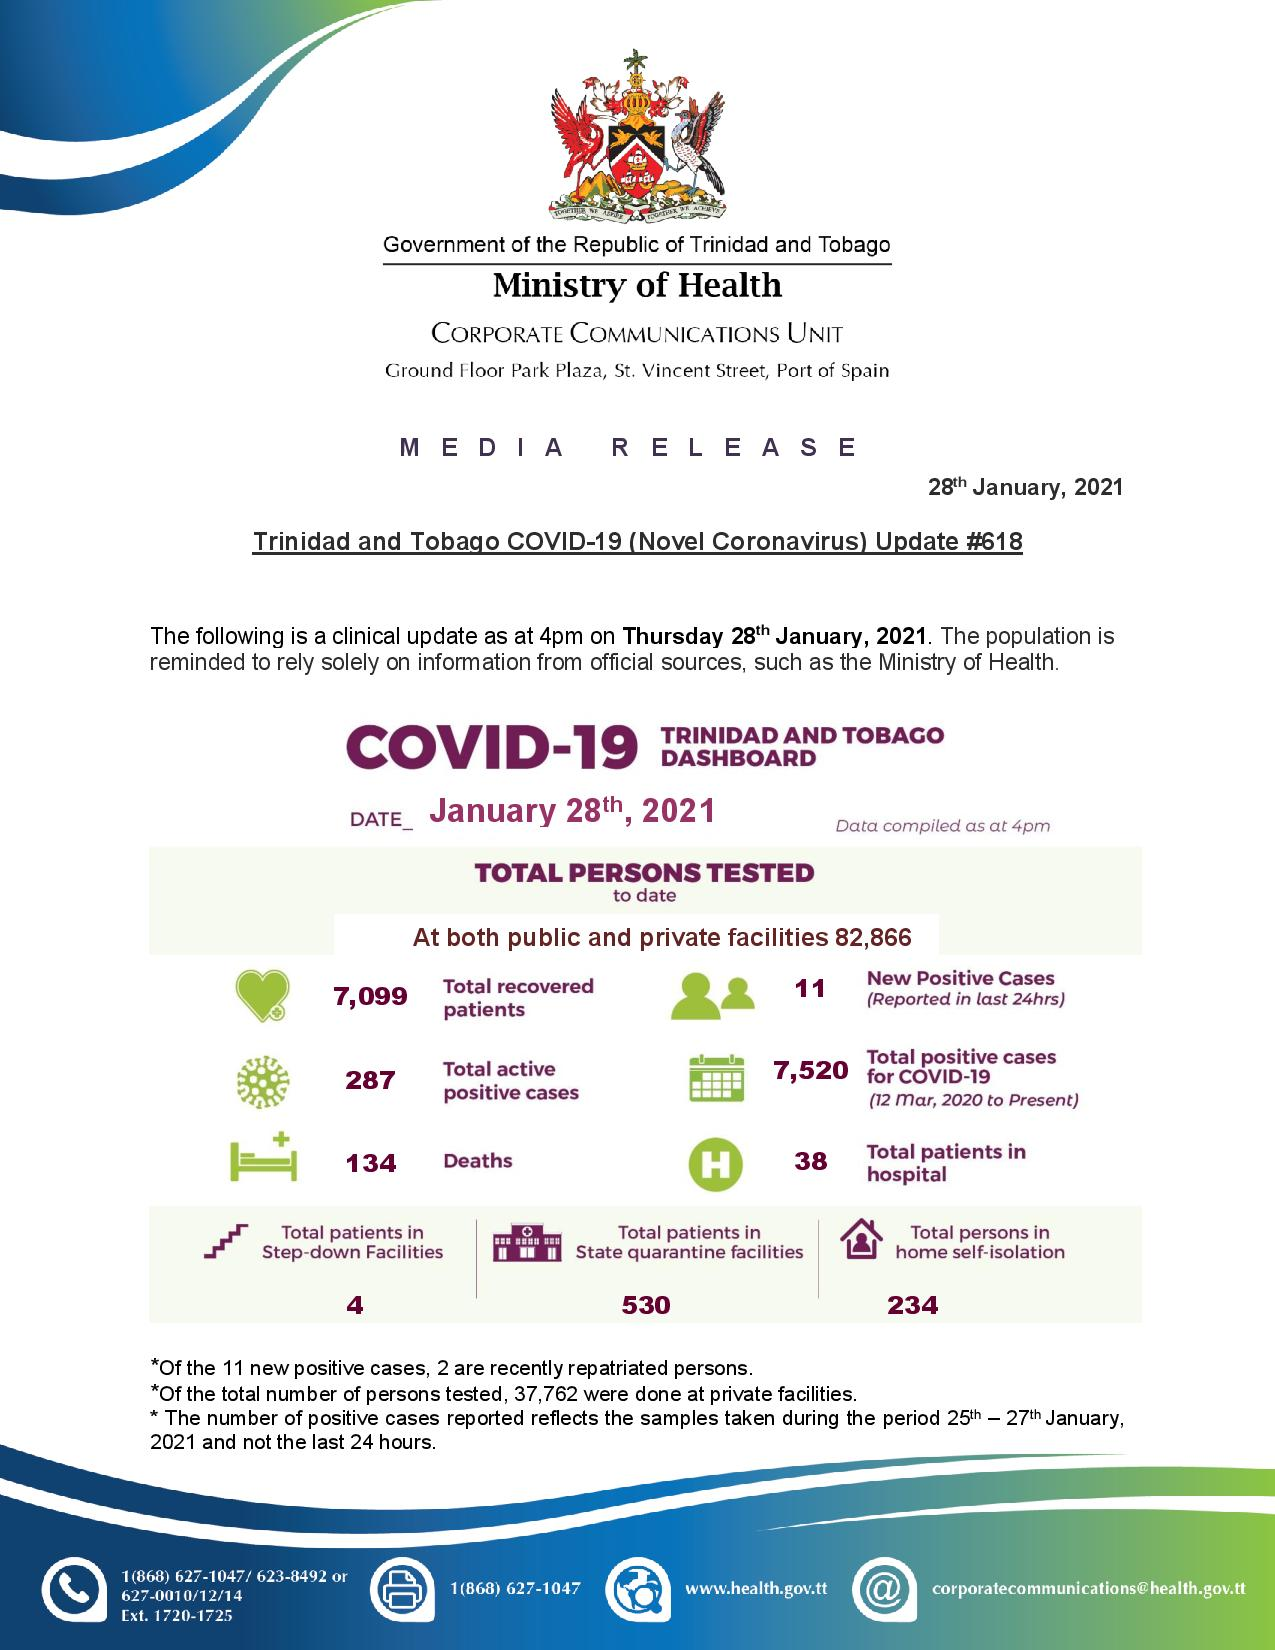 COVID-19 UPDATE - Thursday 28th January 2021